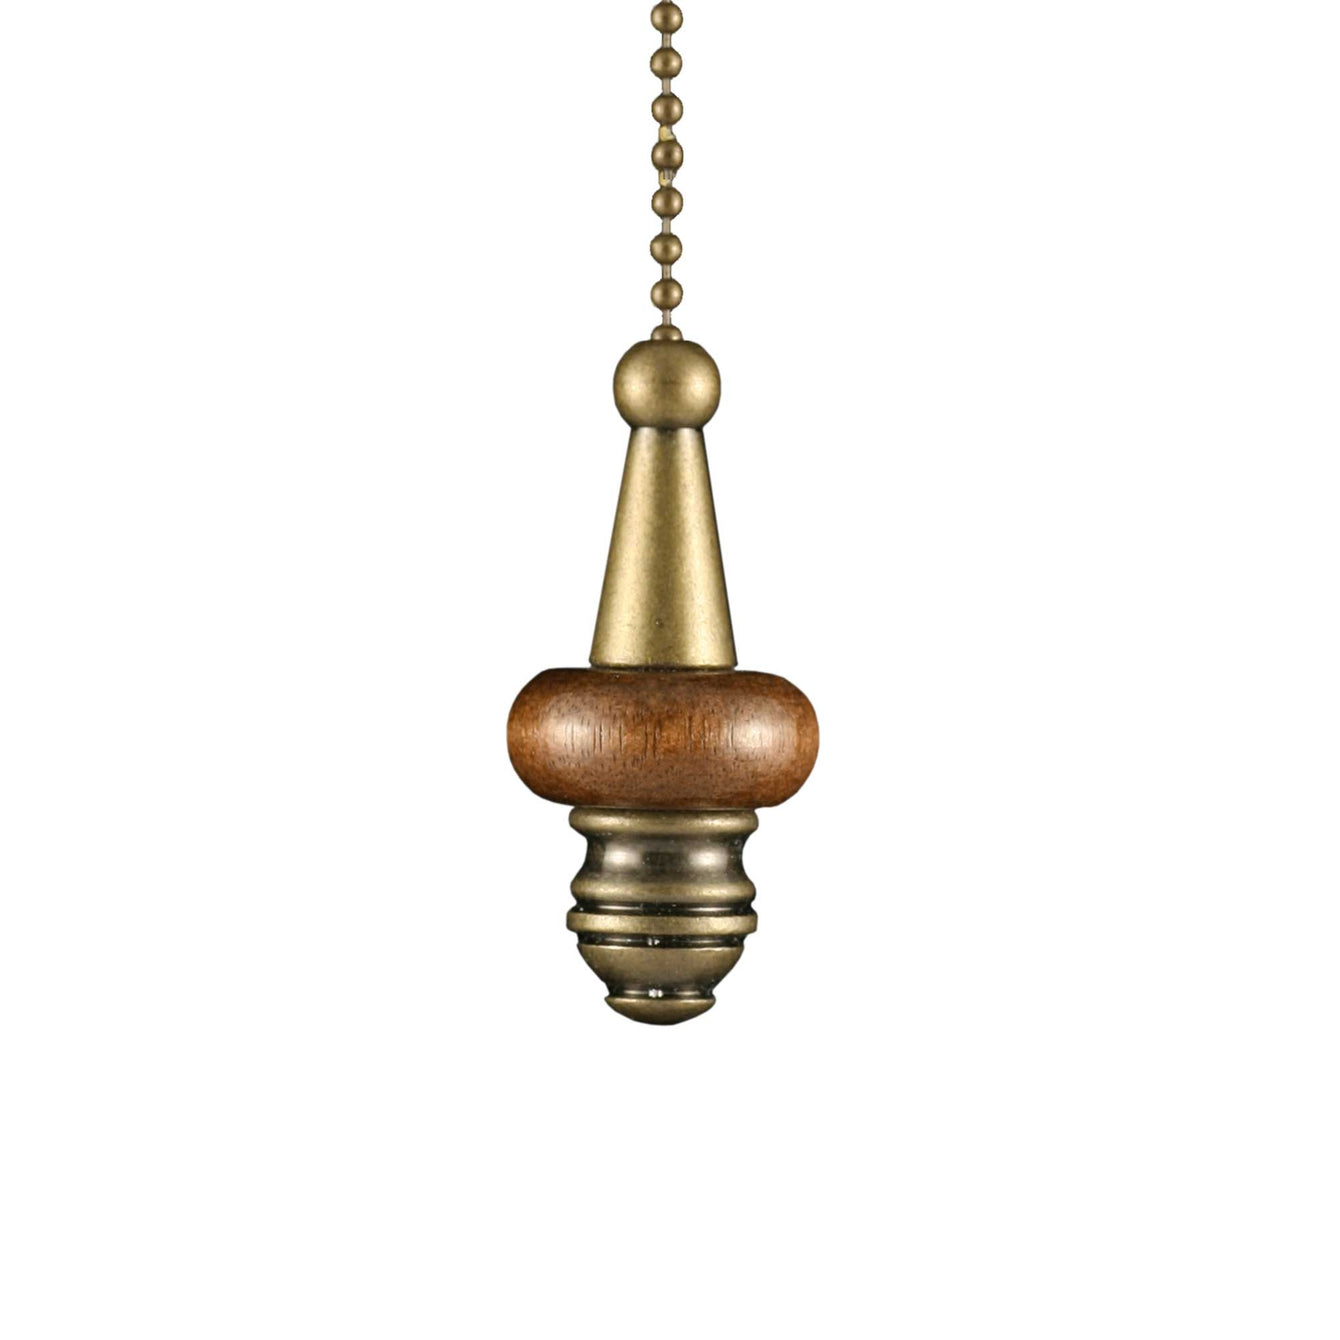 ElekTek Light Pull Chain Wooden Disc With 80cm Matching Chain - Buy It Better Mahogany